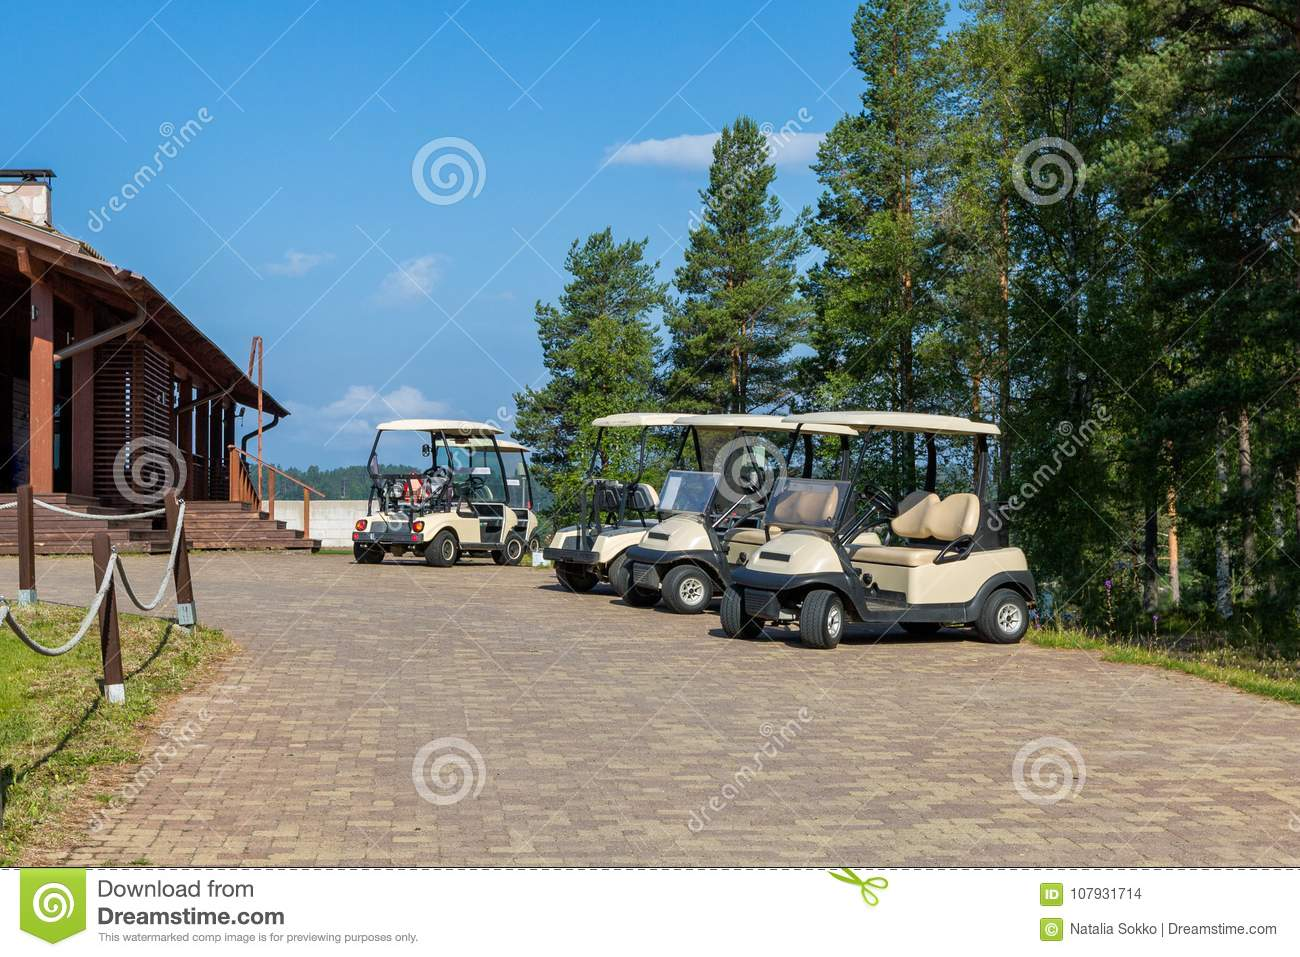 Golf carts on the parking